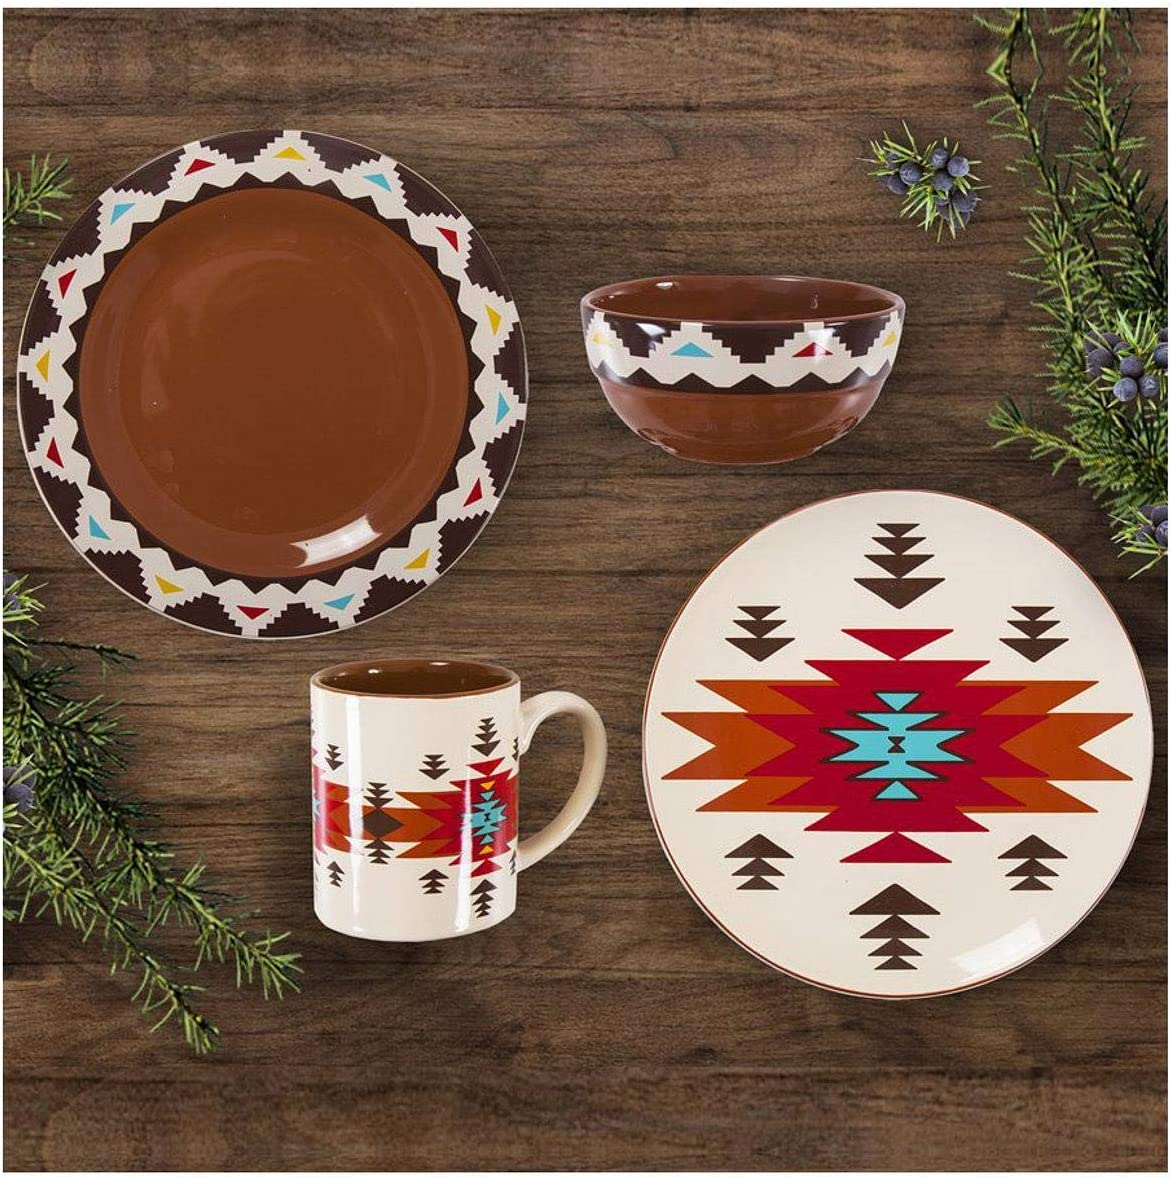 HiEnd Accents Del Sol Aztec 16-PC Southwestern Dinnerware Set, Brown, Cream, Red, Turquoise & Yellow